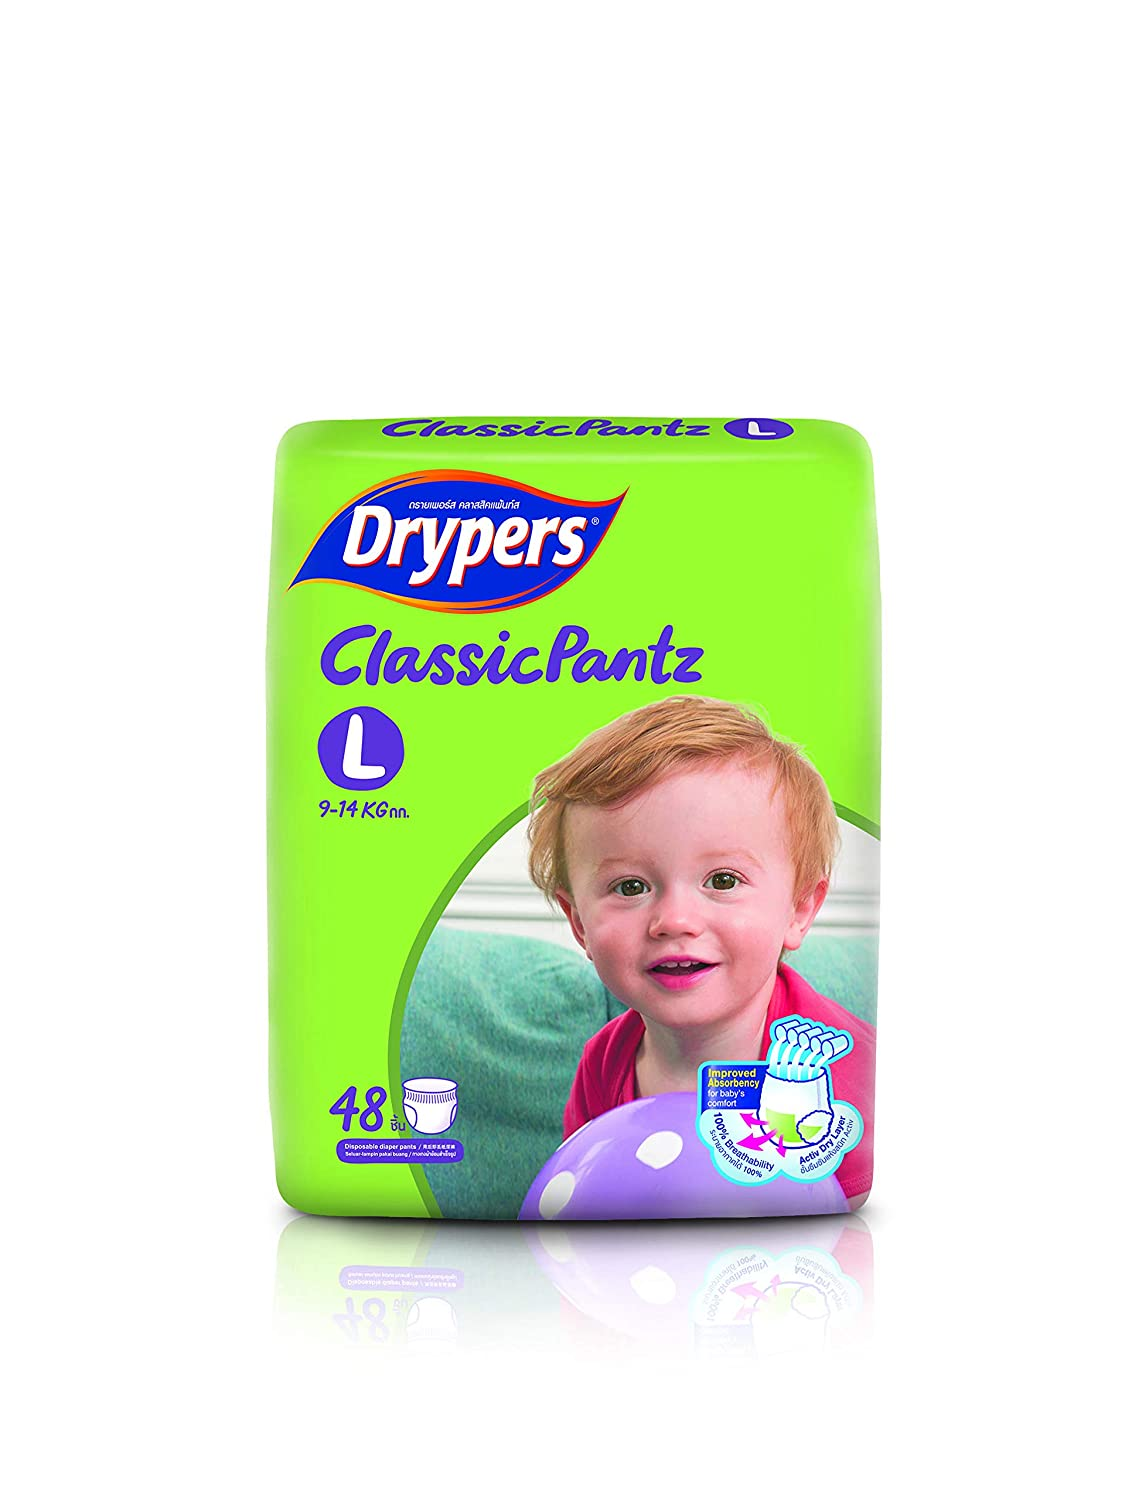 129b3921ba49 Buy Drypers Classicpantz Extra Large Sized Pant Style Diaper (112 Counts)  Online at Low Prices in India - Amazon.in